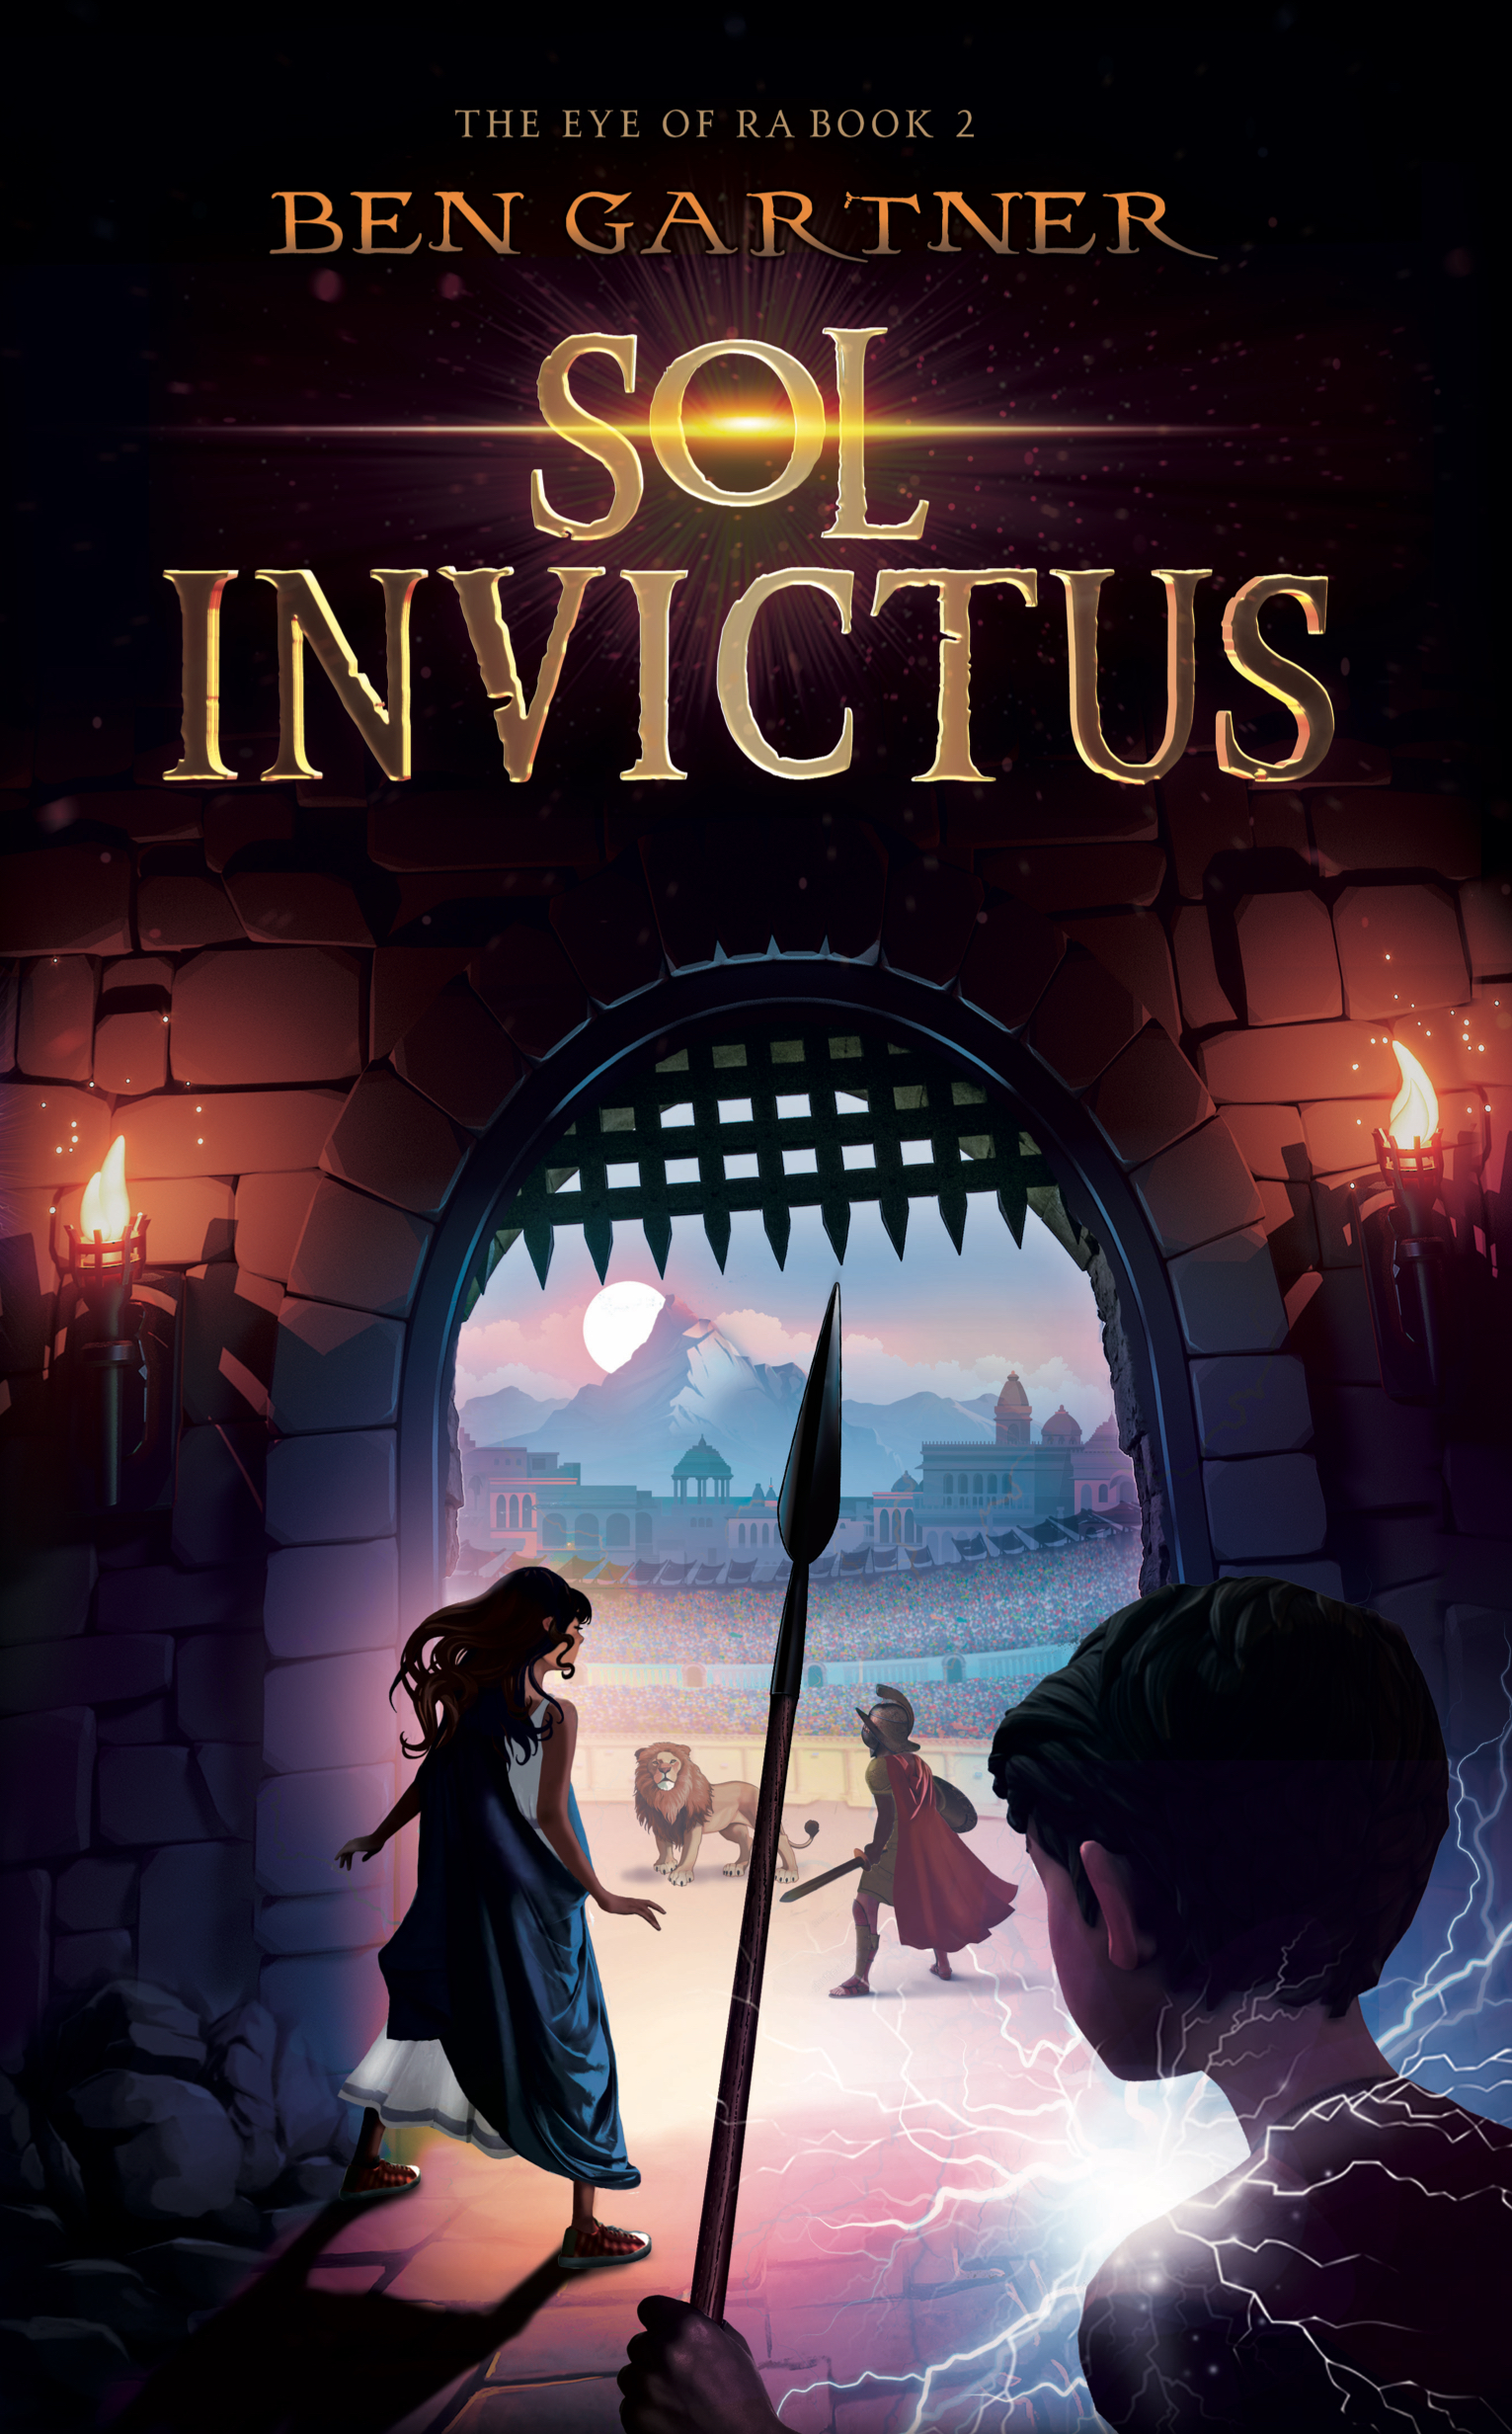 Sol Invictus by Ben Gartner